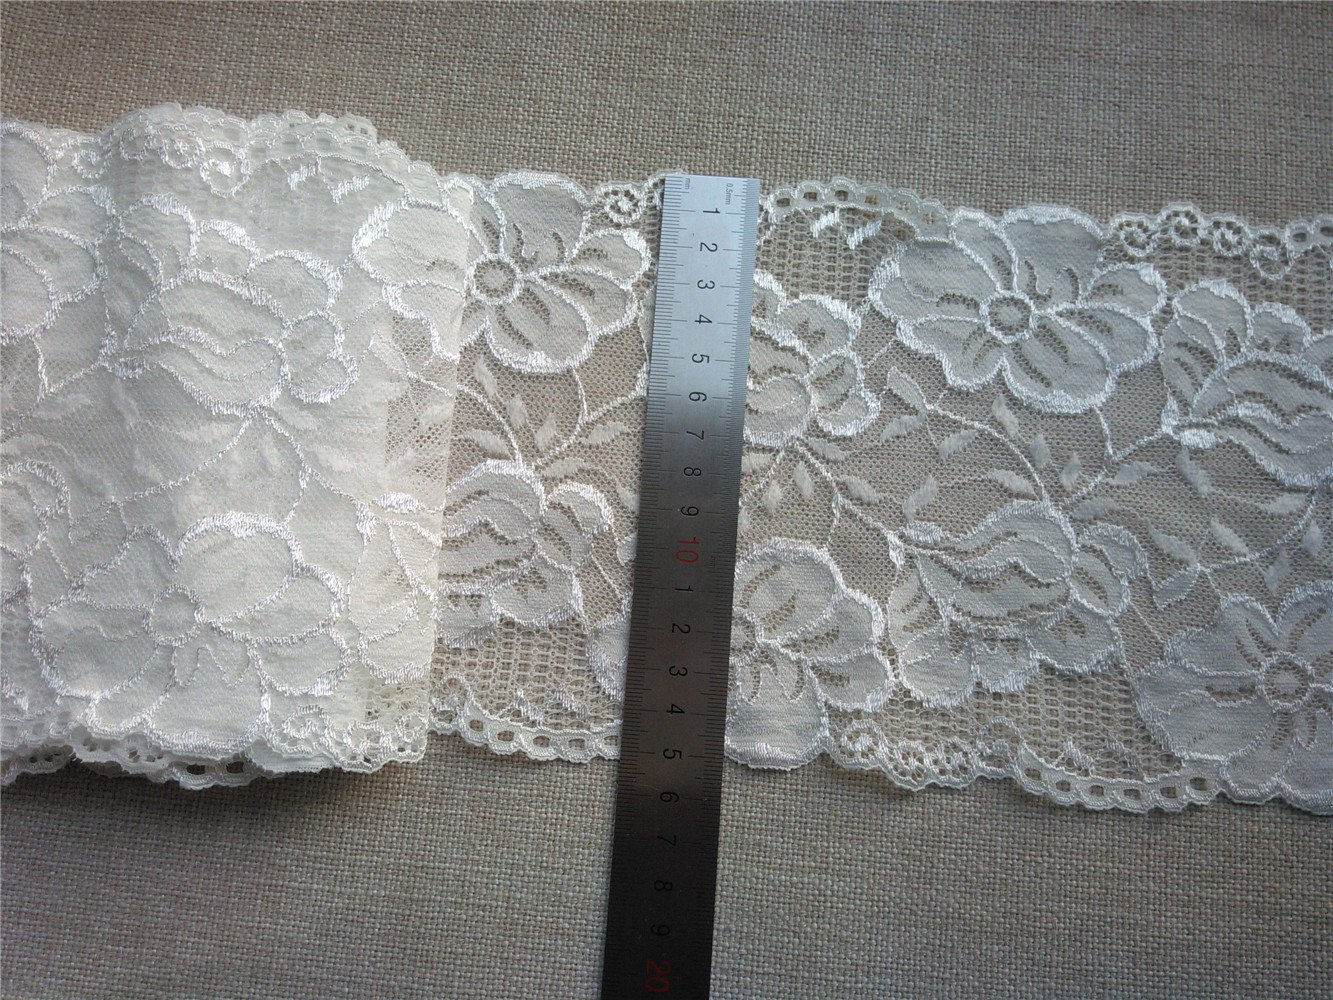 Stretch lace trim,5yards white lace,garter lace trimming-LSY005